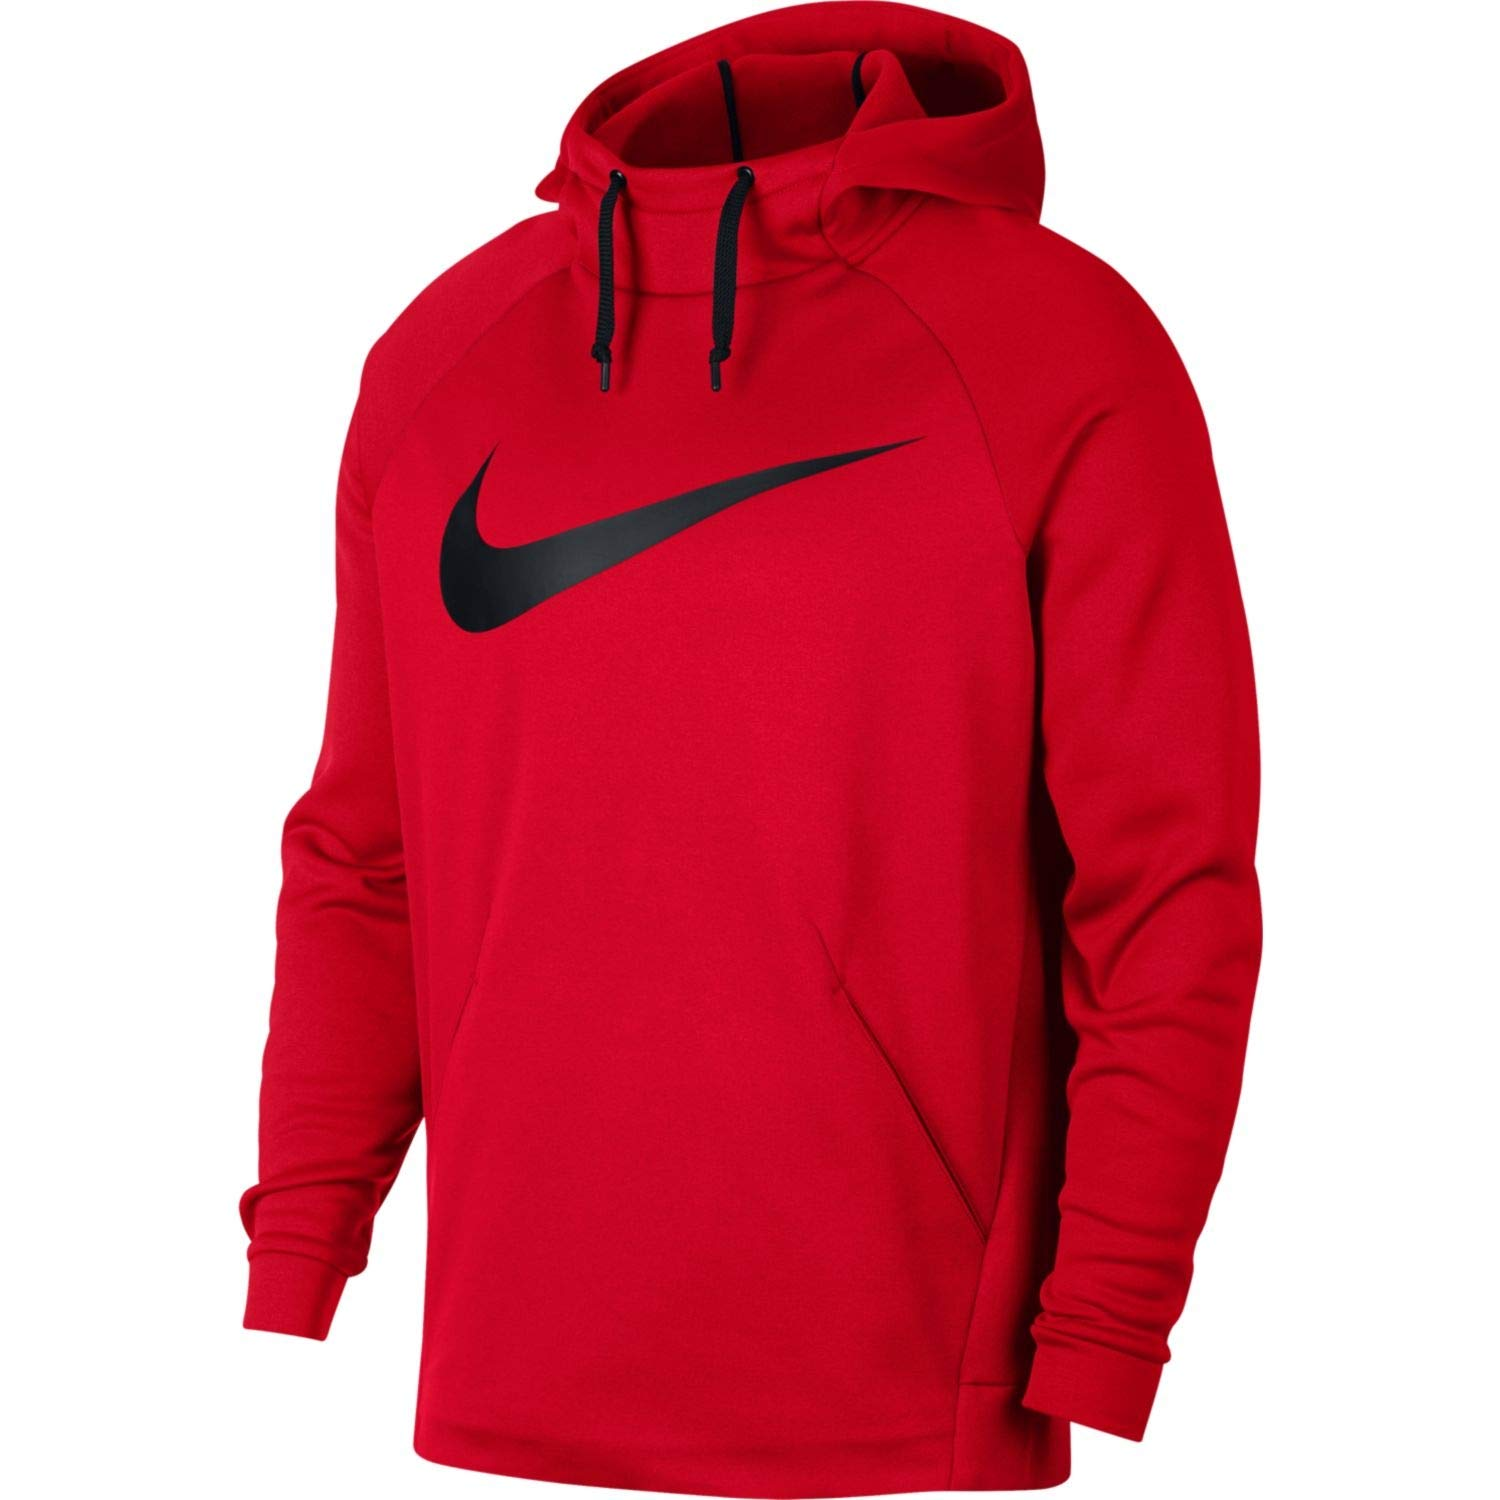 Nike Mens Therma Swoosh Essential Pull Over Hoodie University Red/Black 931991-657 Size Small